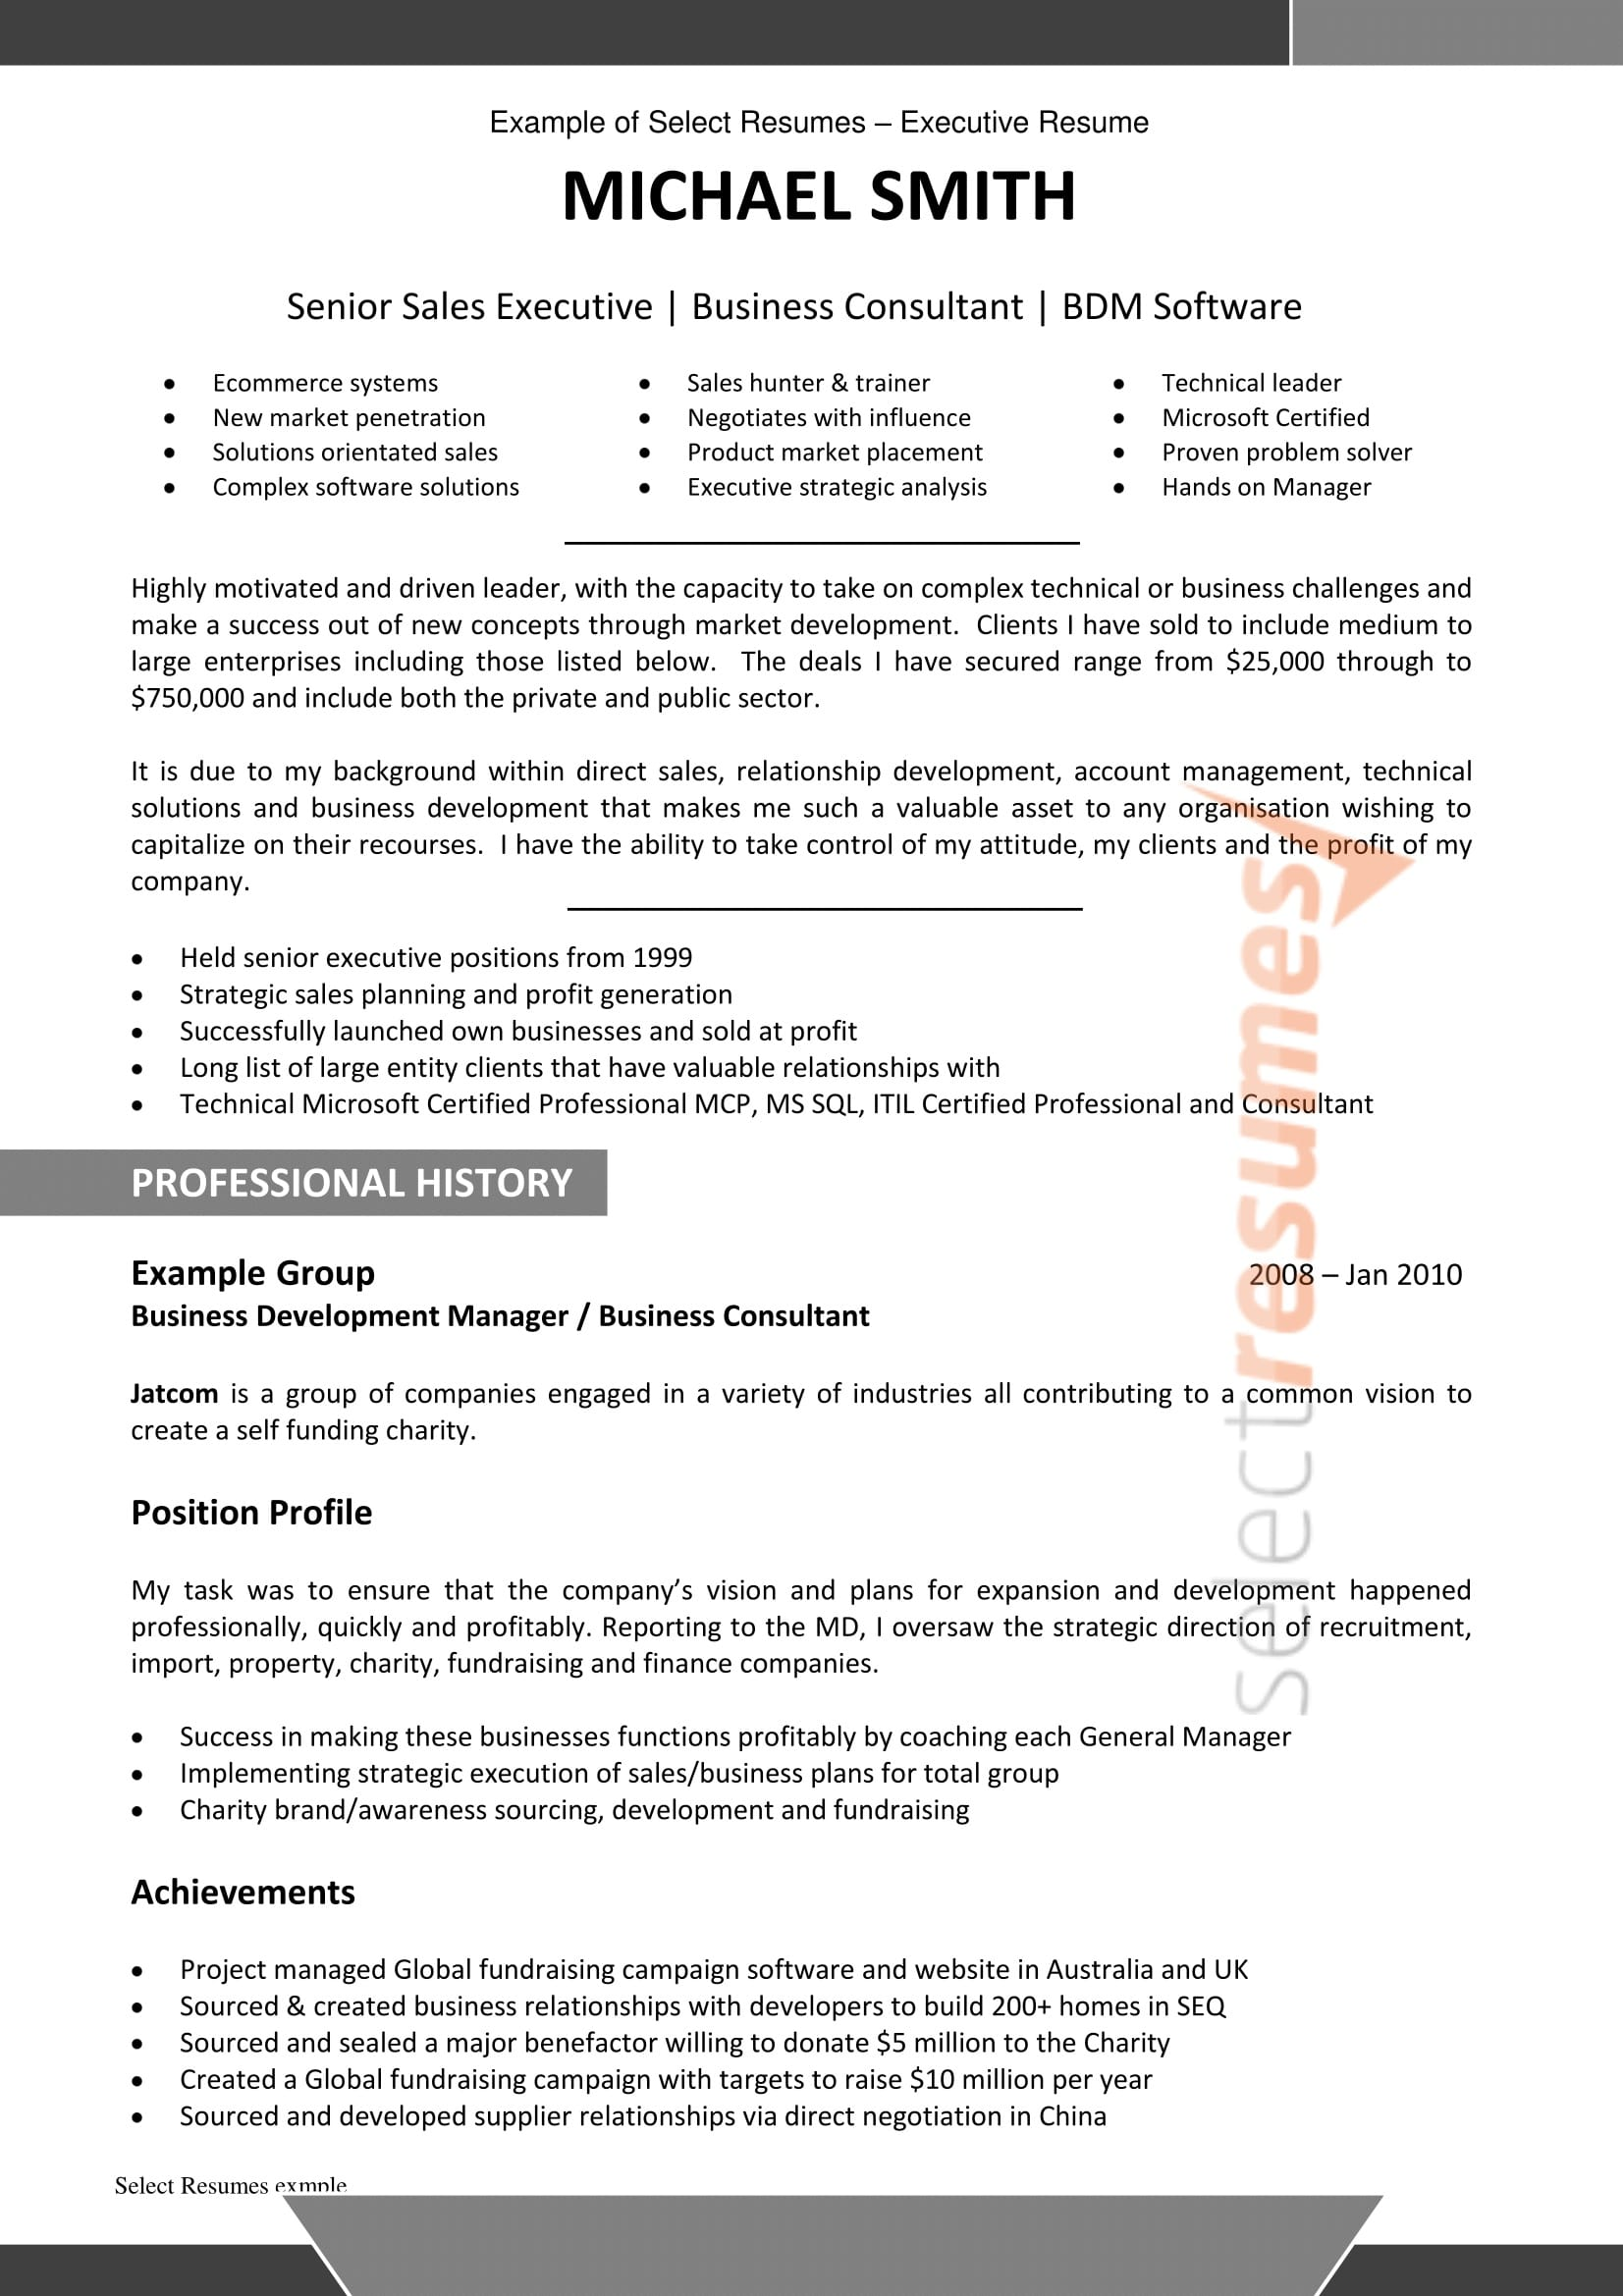 professional resume services by writers executive preparation for childcare job diploma Resume Executive Resume Preparation Services